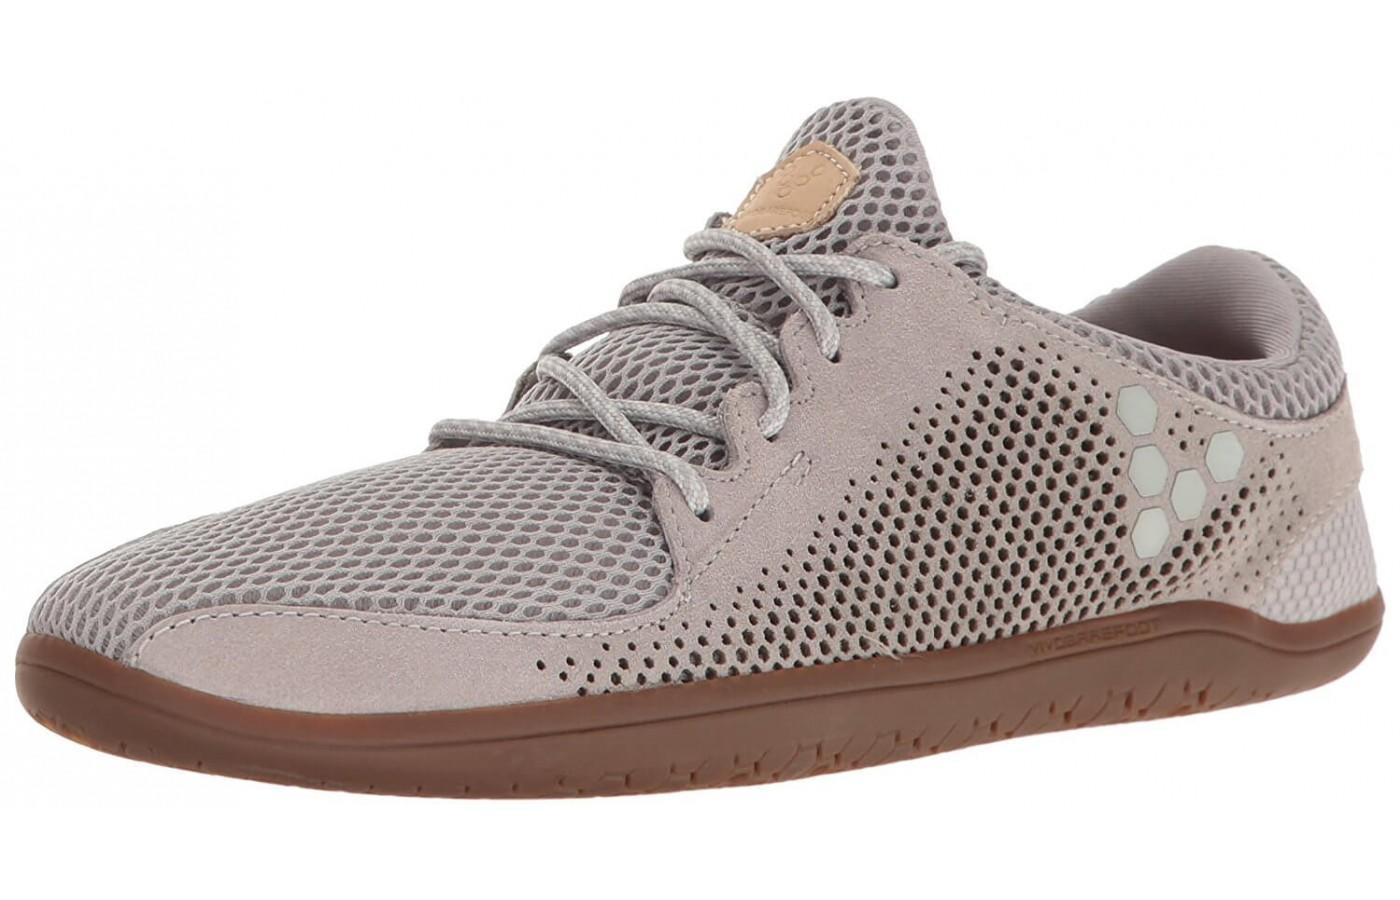 The Vivobarefoot Primus Trio shown from the front/side